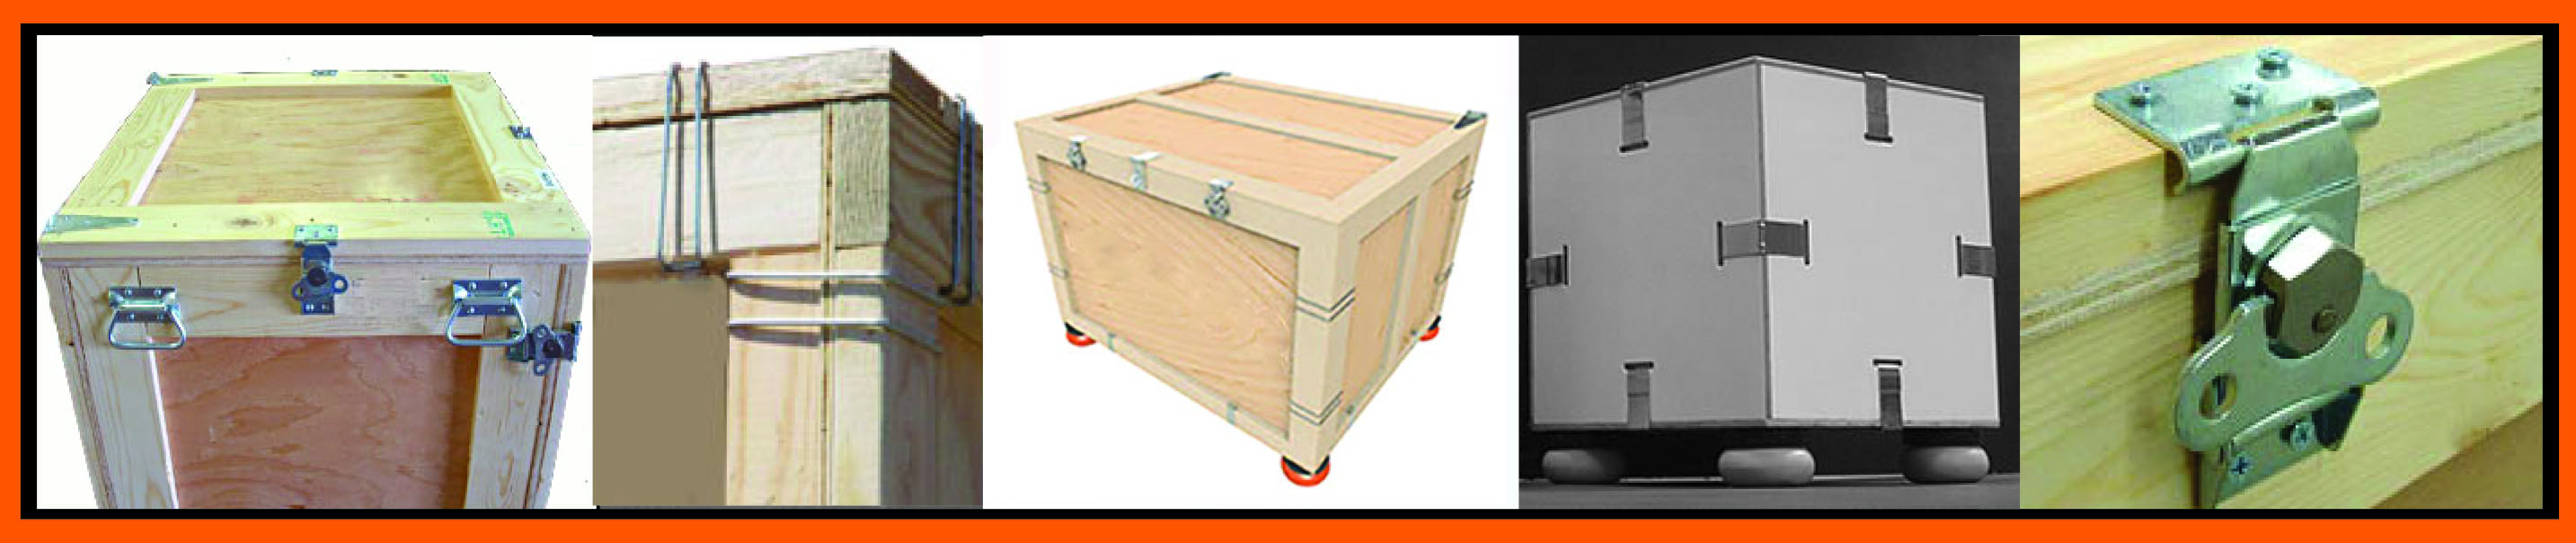 crating-product-description-graphic.jpg